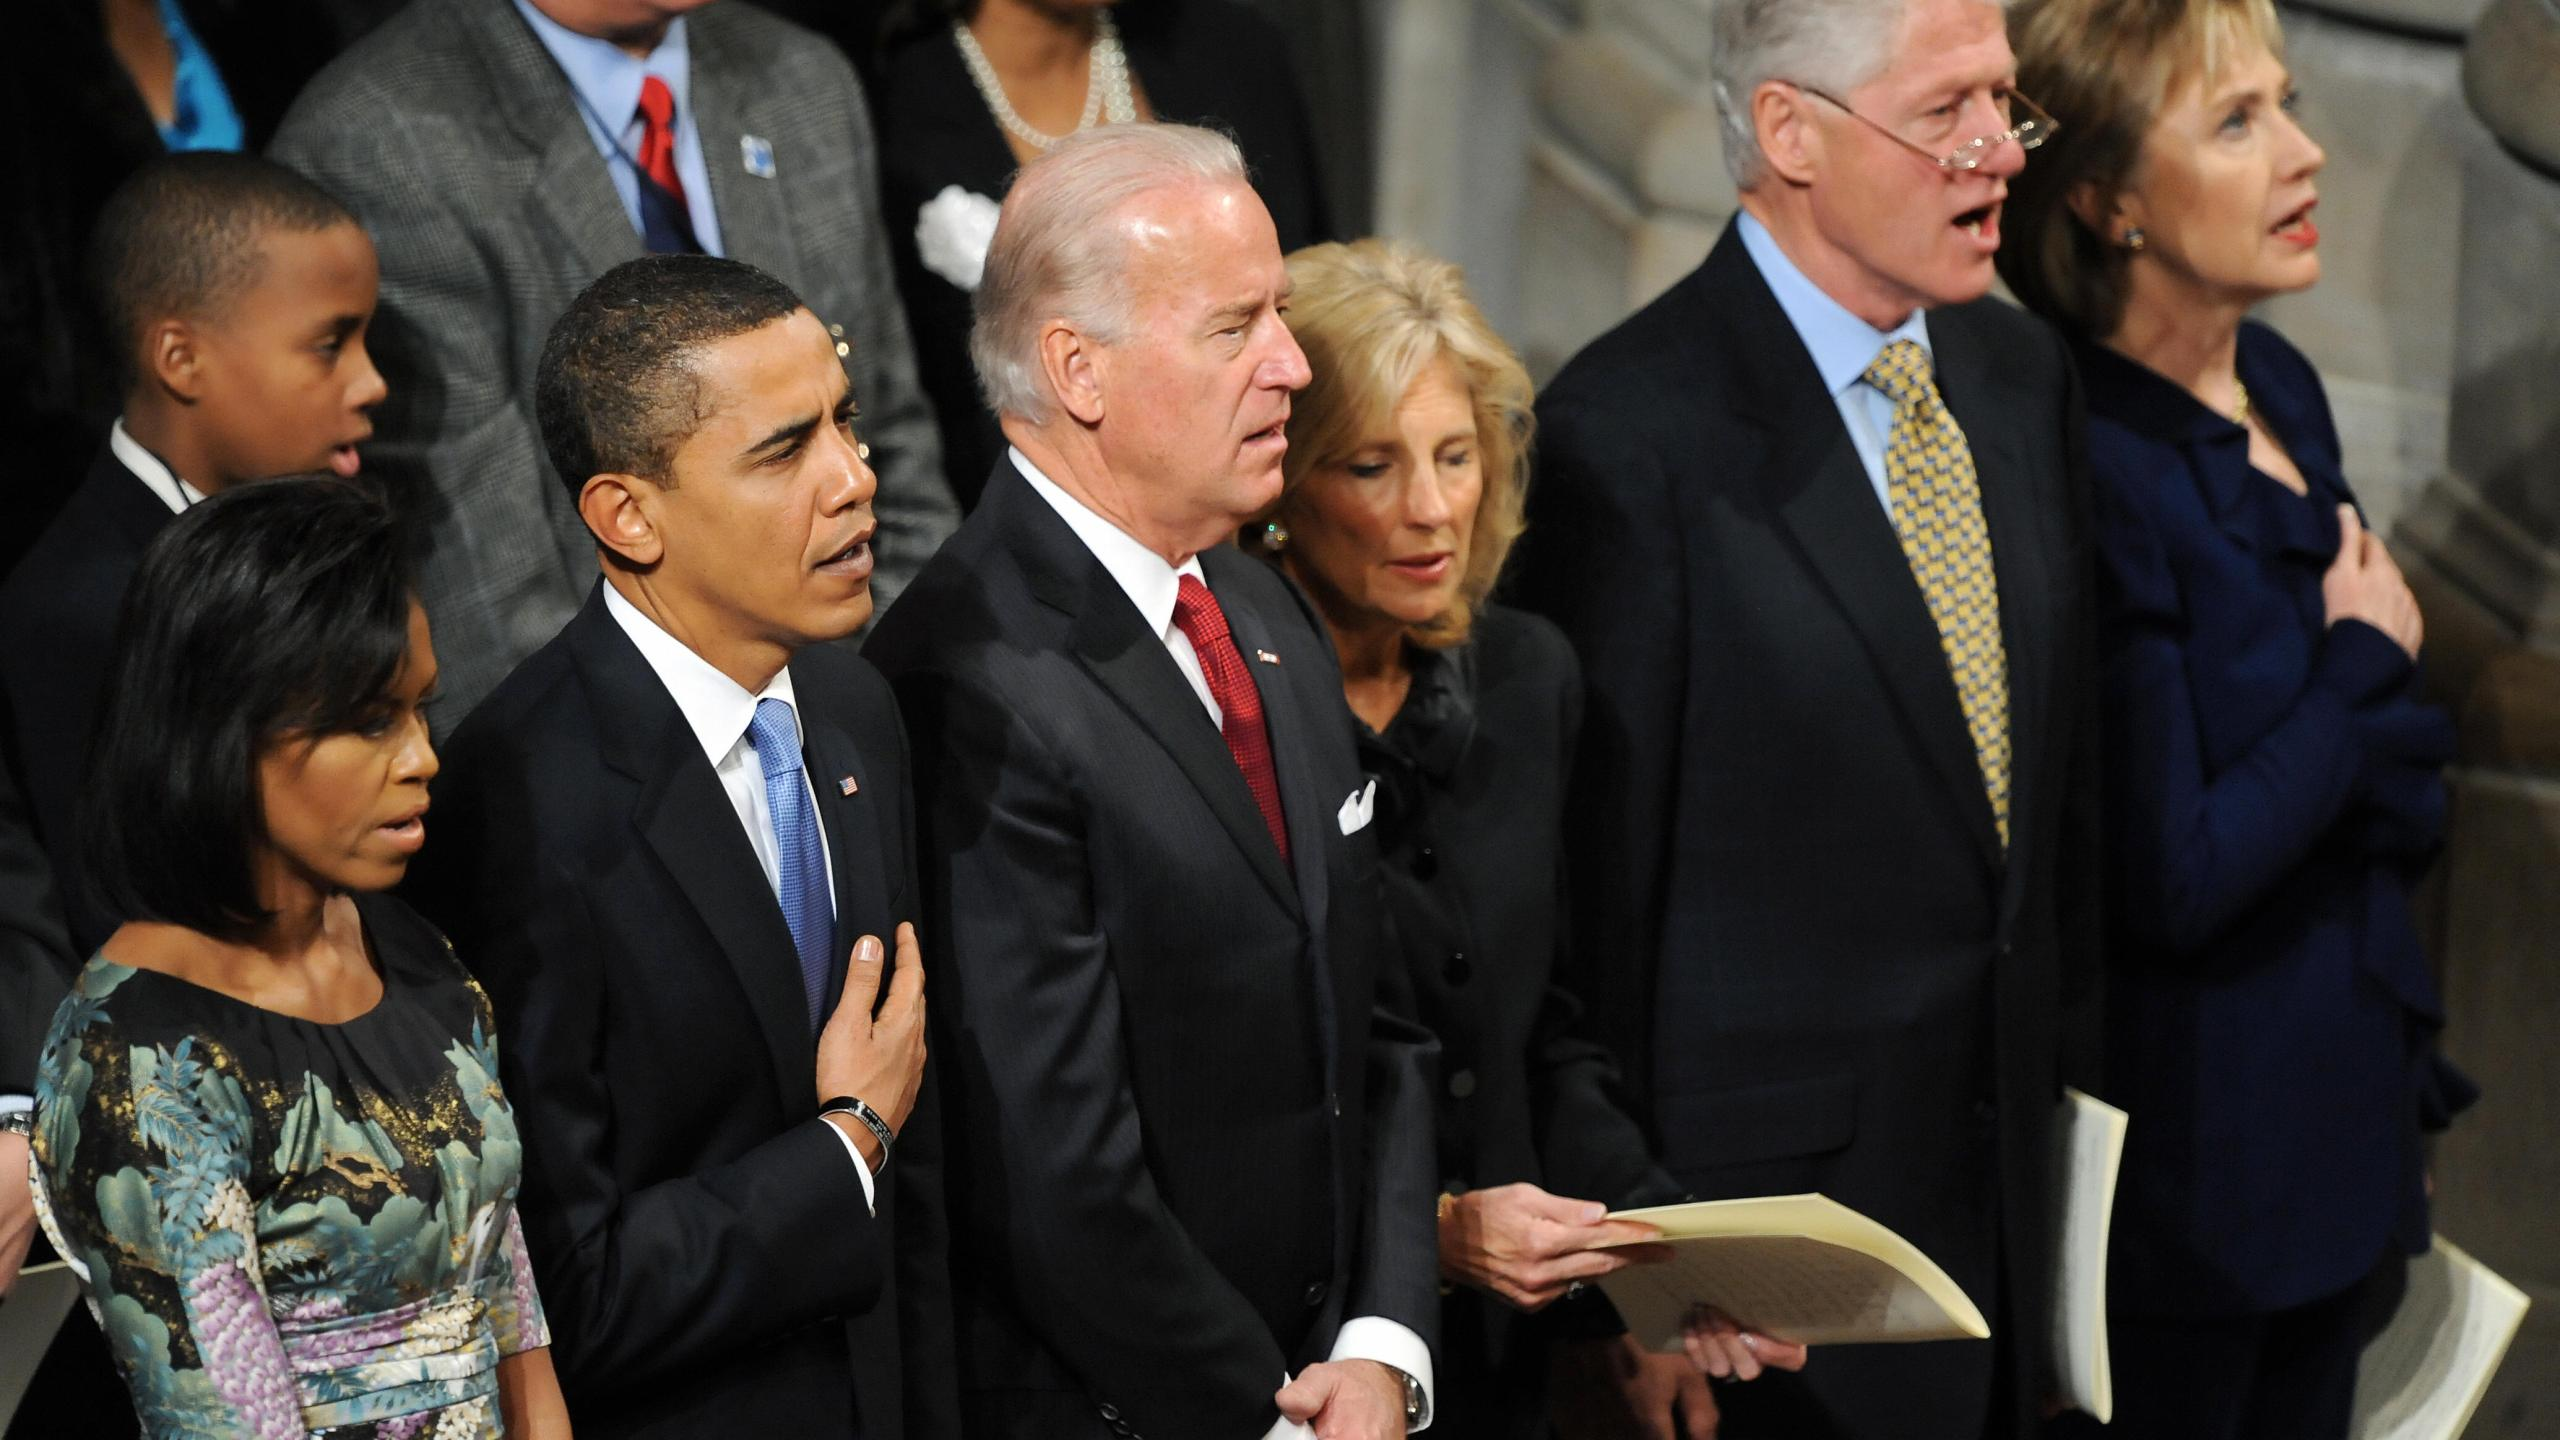 Barack and Michella Obama, Joe and Jill Biden, and Bill and Hillary Rodham Clinton attend the National Prayer Service in Washington, D.C., on Jan. 21, 2009. (JEWEL SAMAD/AFP via Getty Images)